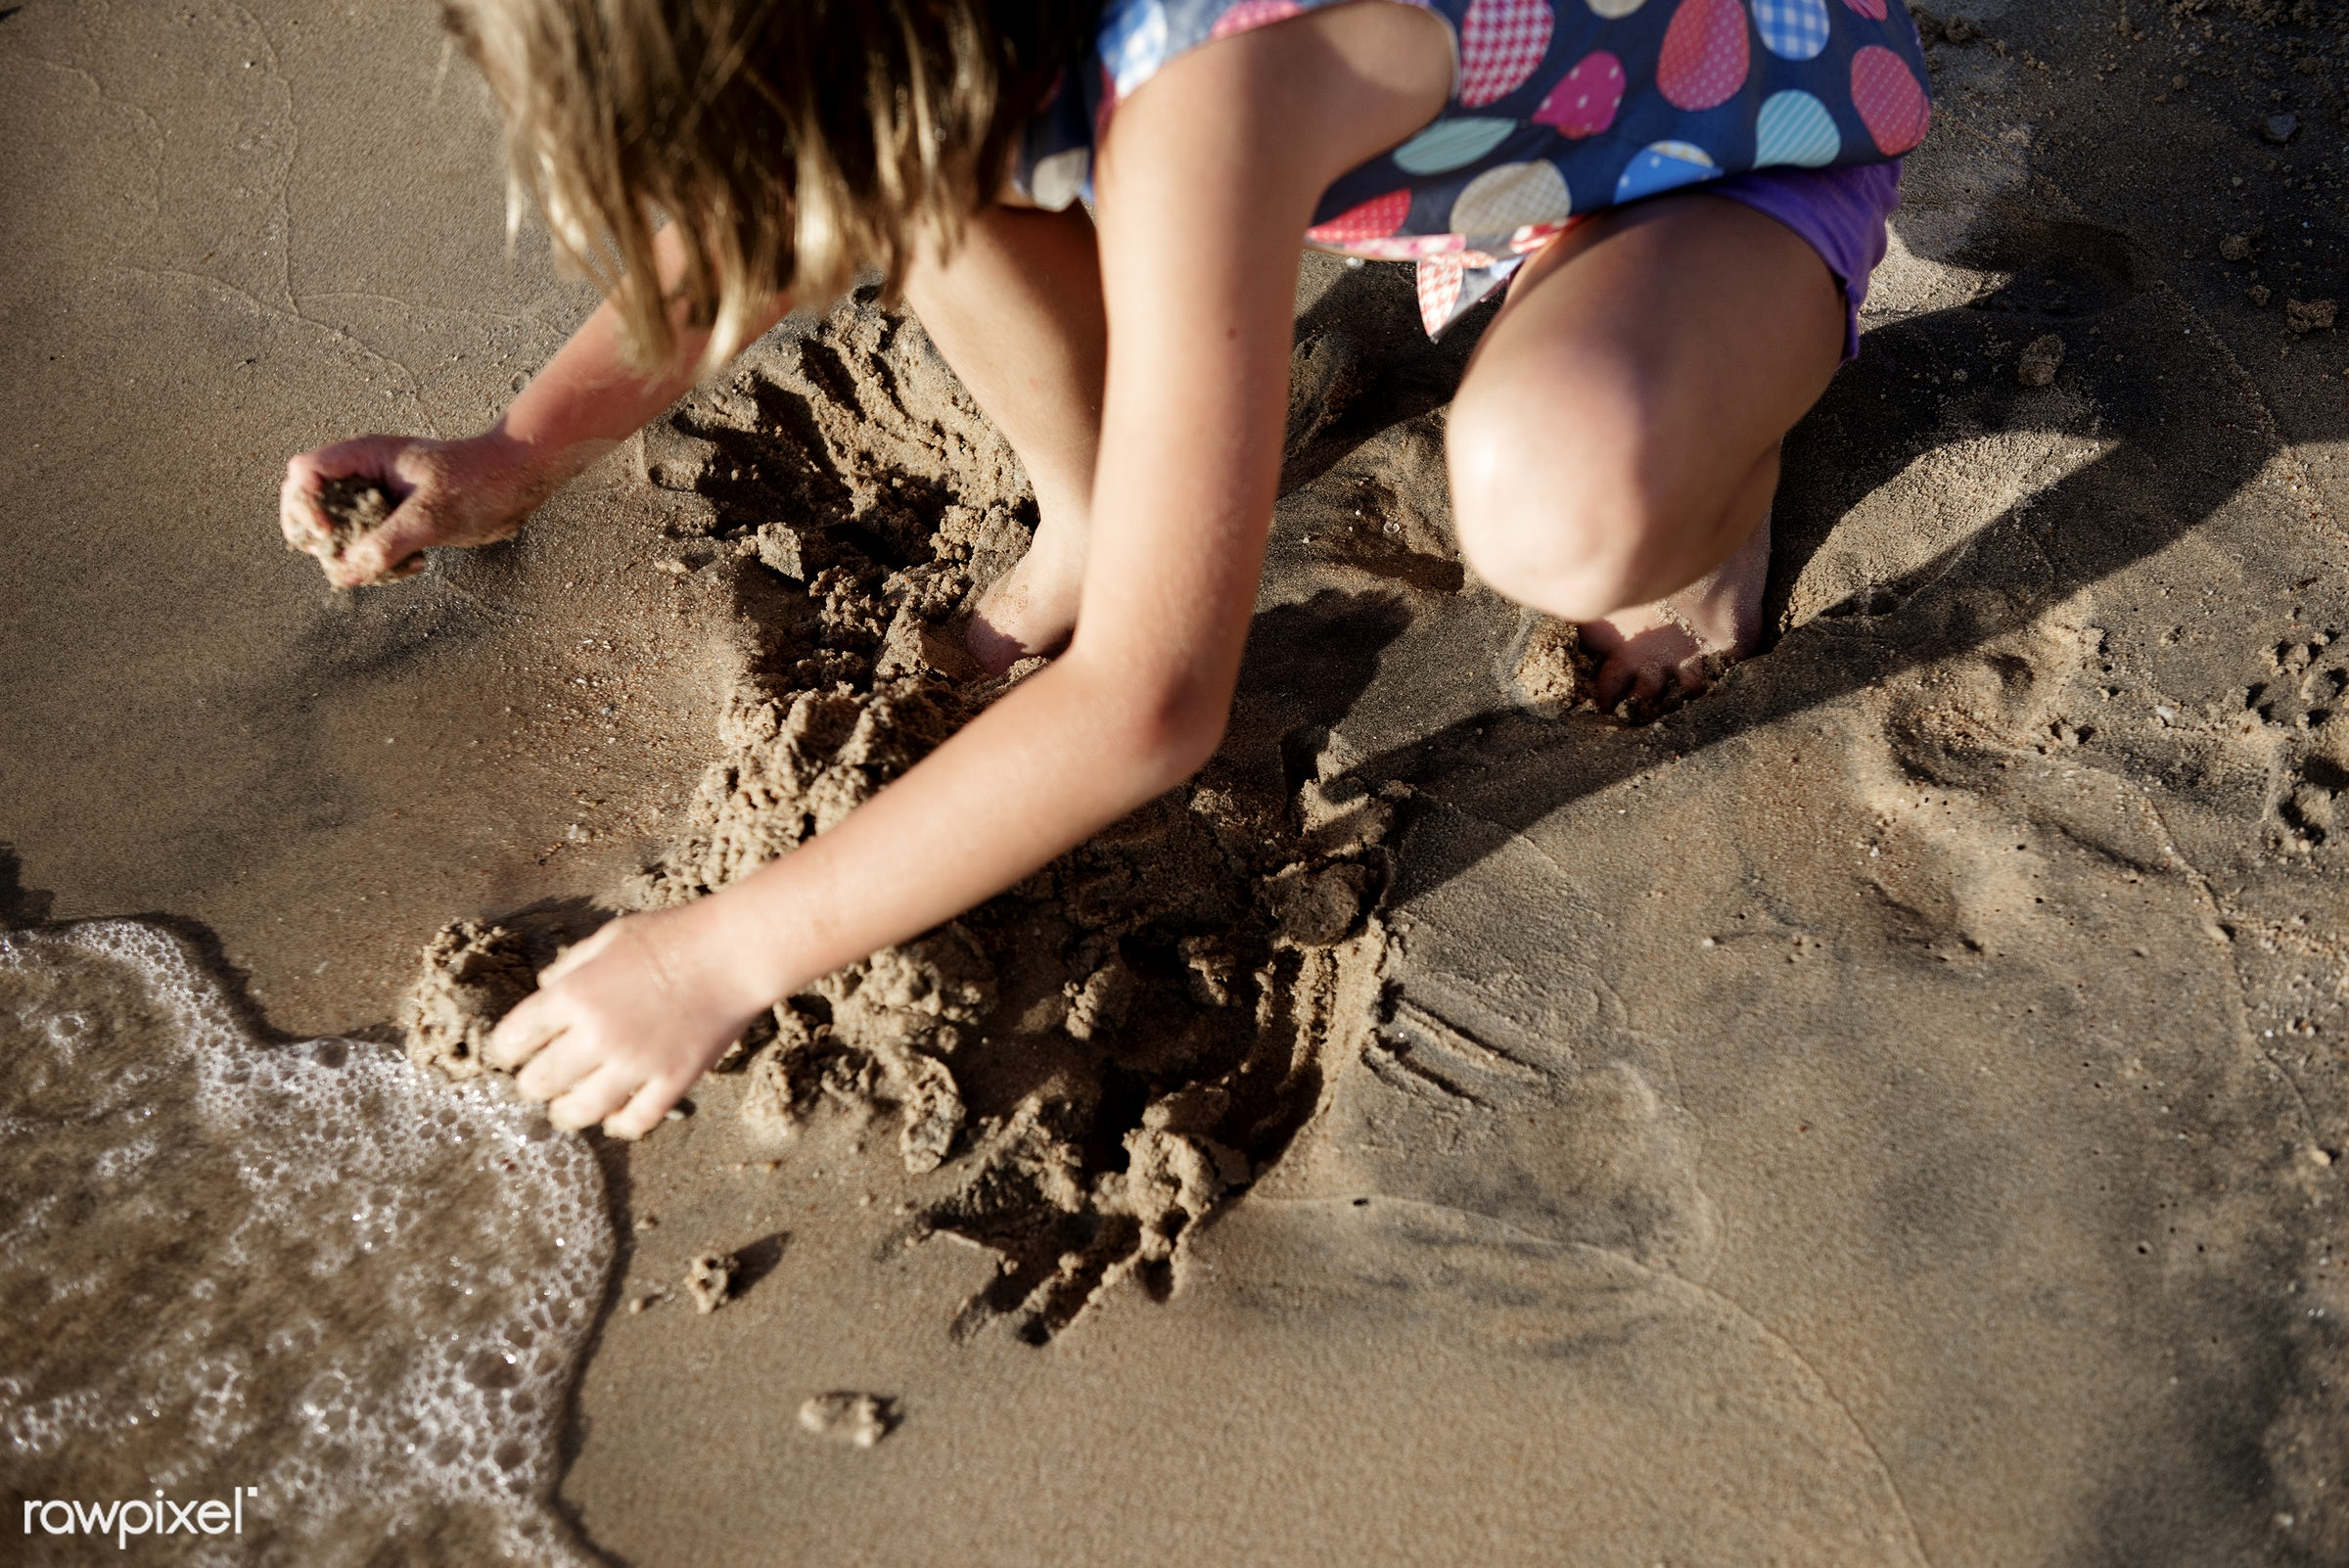 shore, beach, kid, playing, child, girl, nature, sand, crouch, sea, fun, young, holiday, vacation, bay, summer